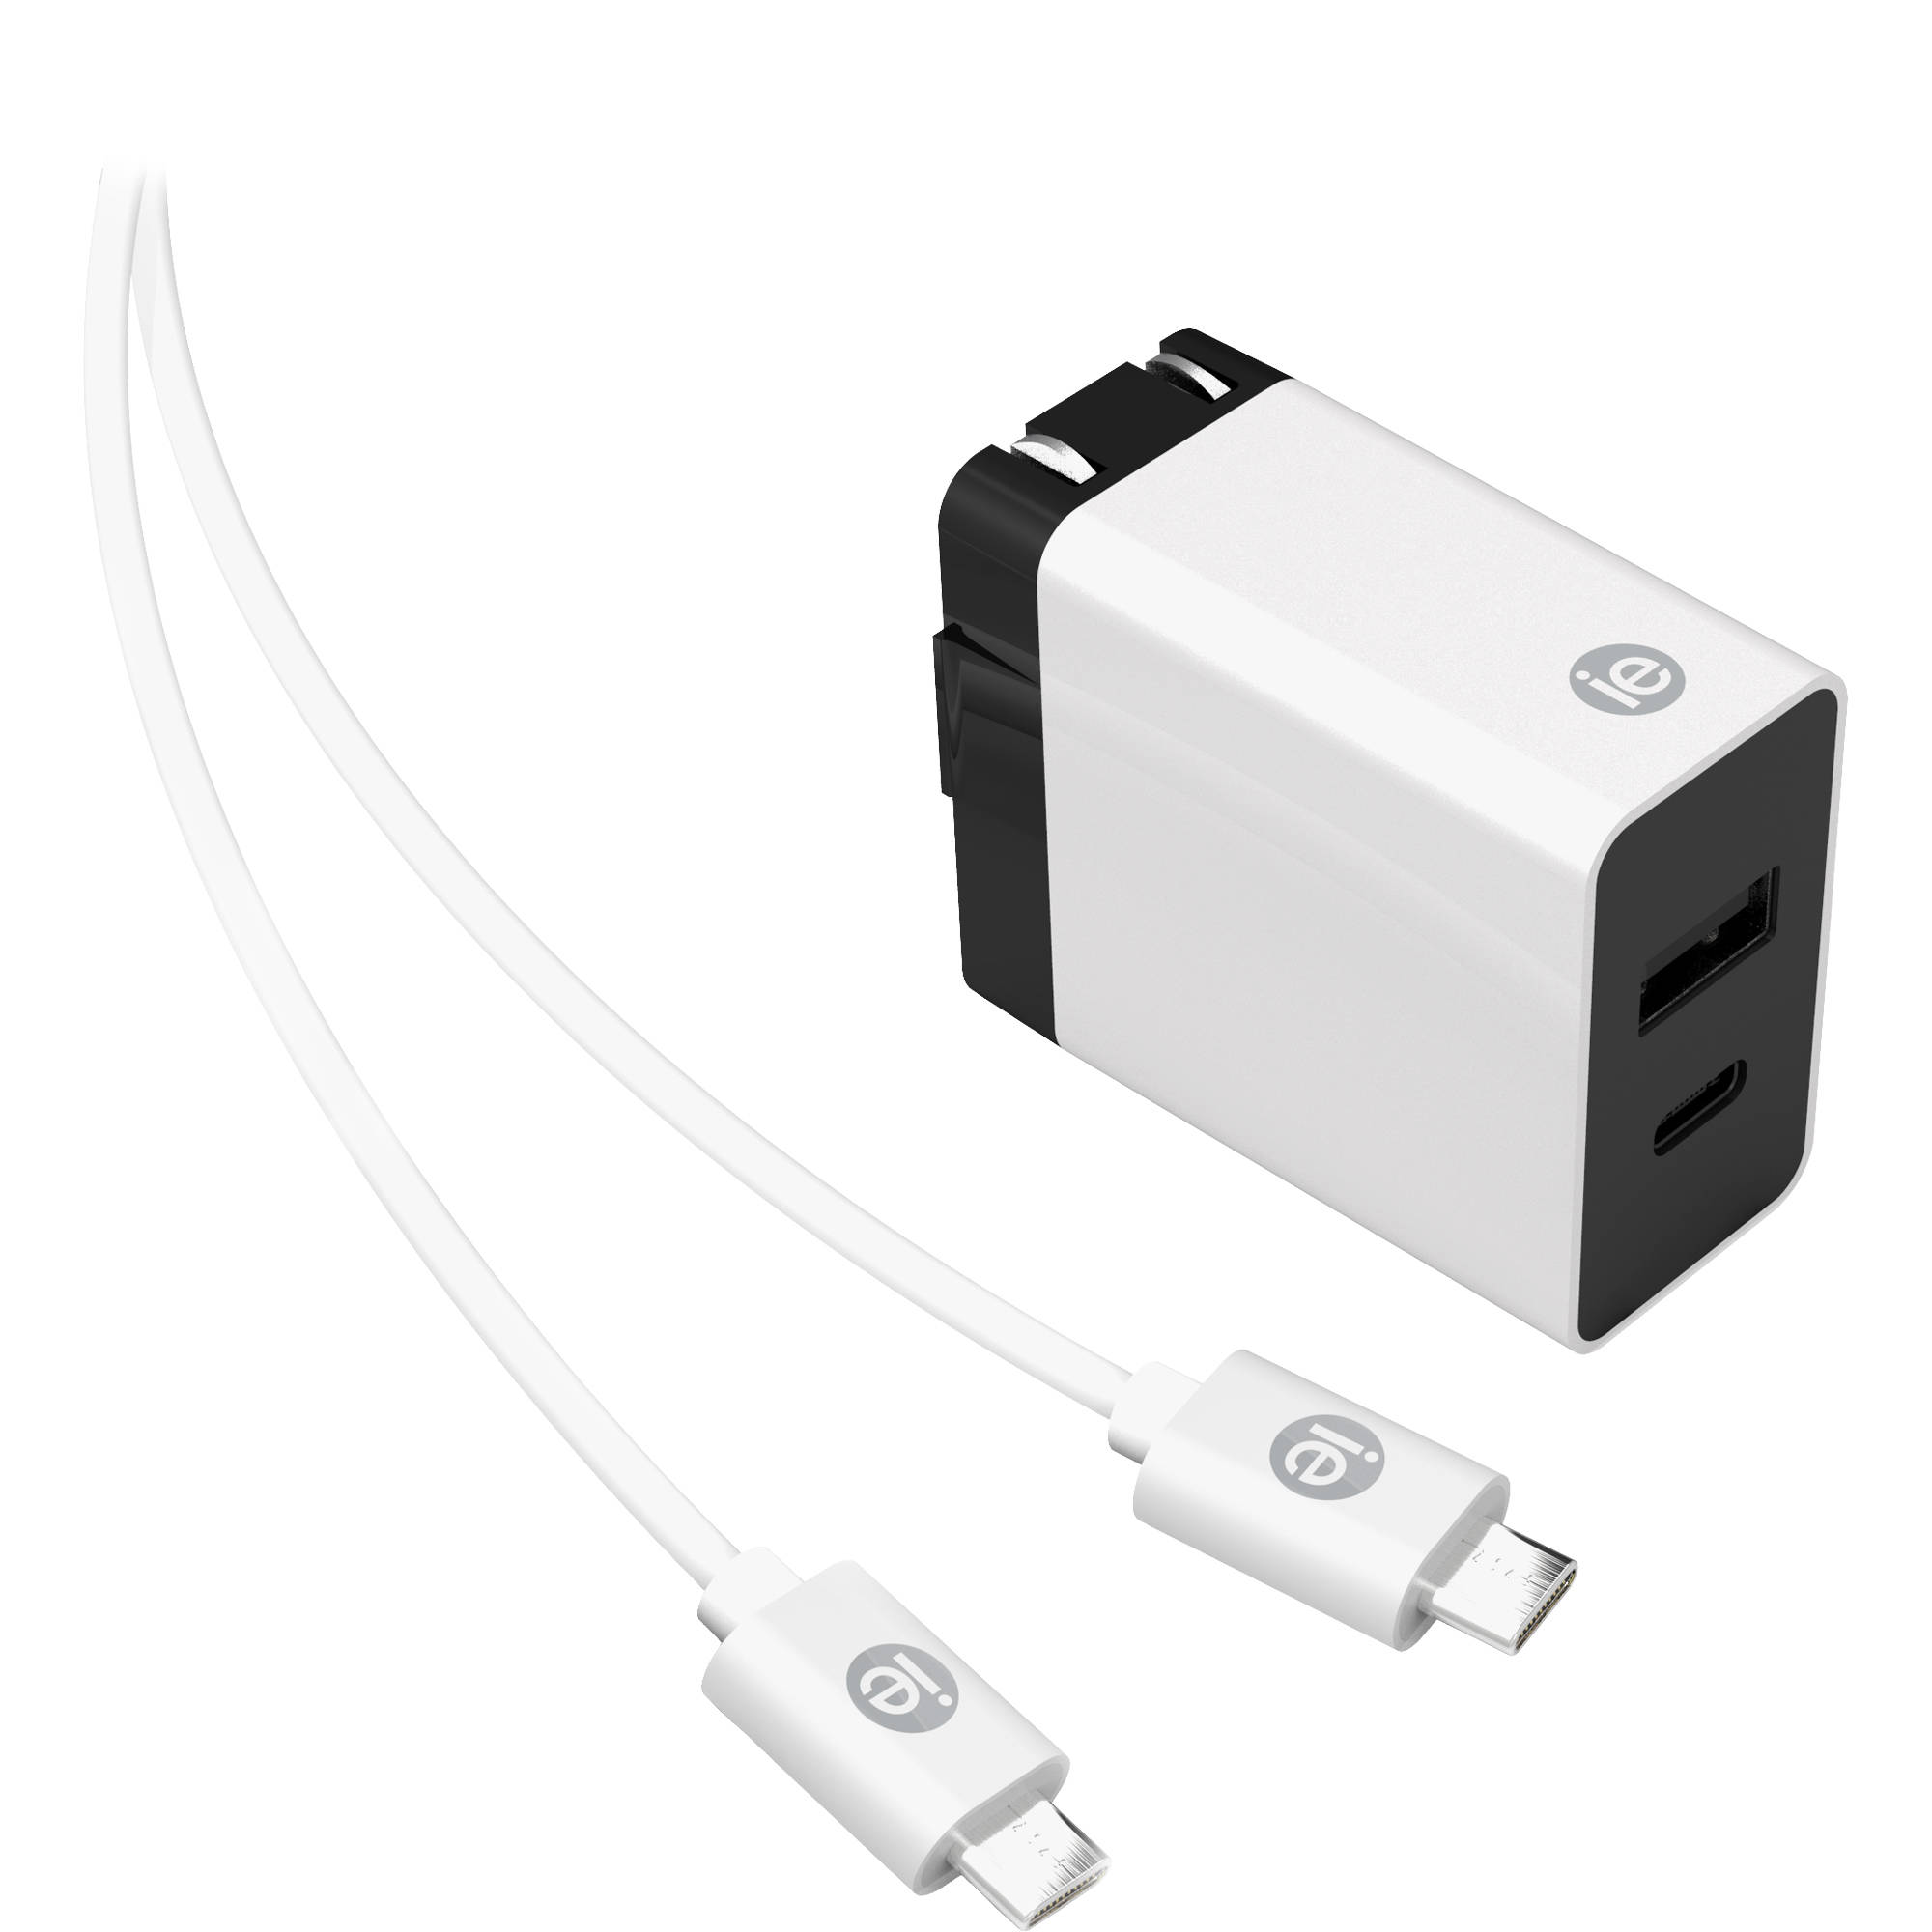 iessentials_ien_acc_31a1c_3_4_amp_1_usb_a_and_1420987.jpg